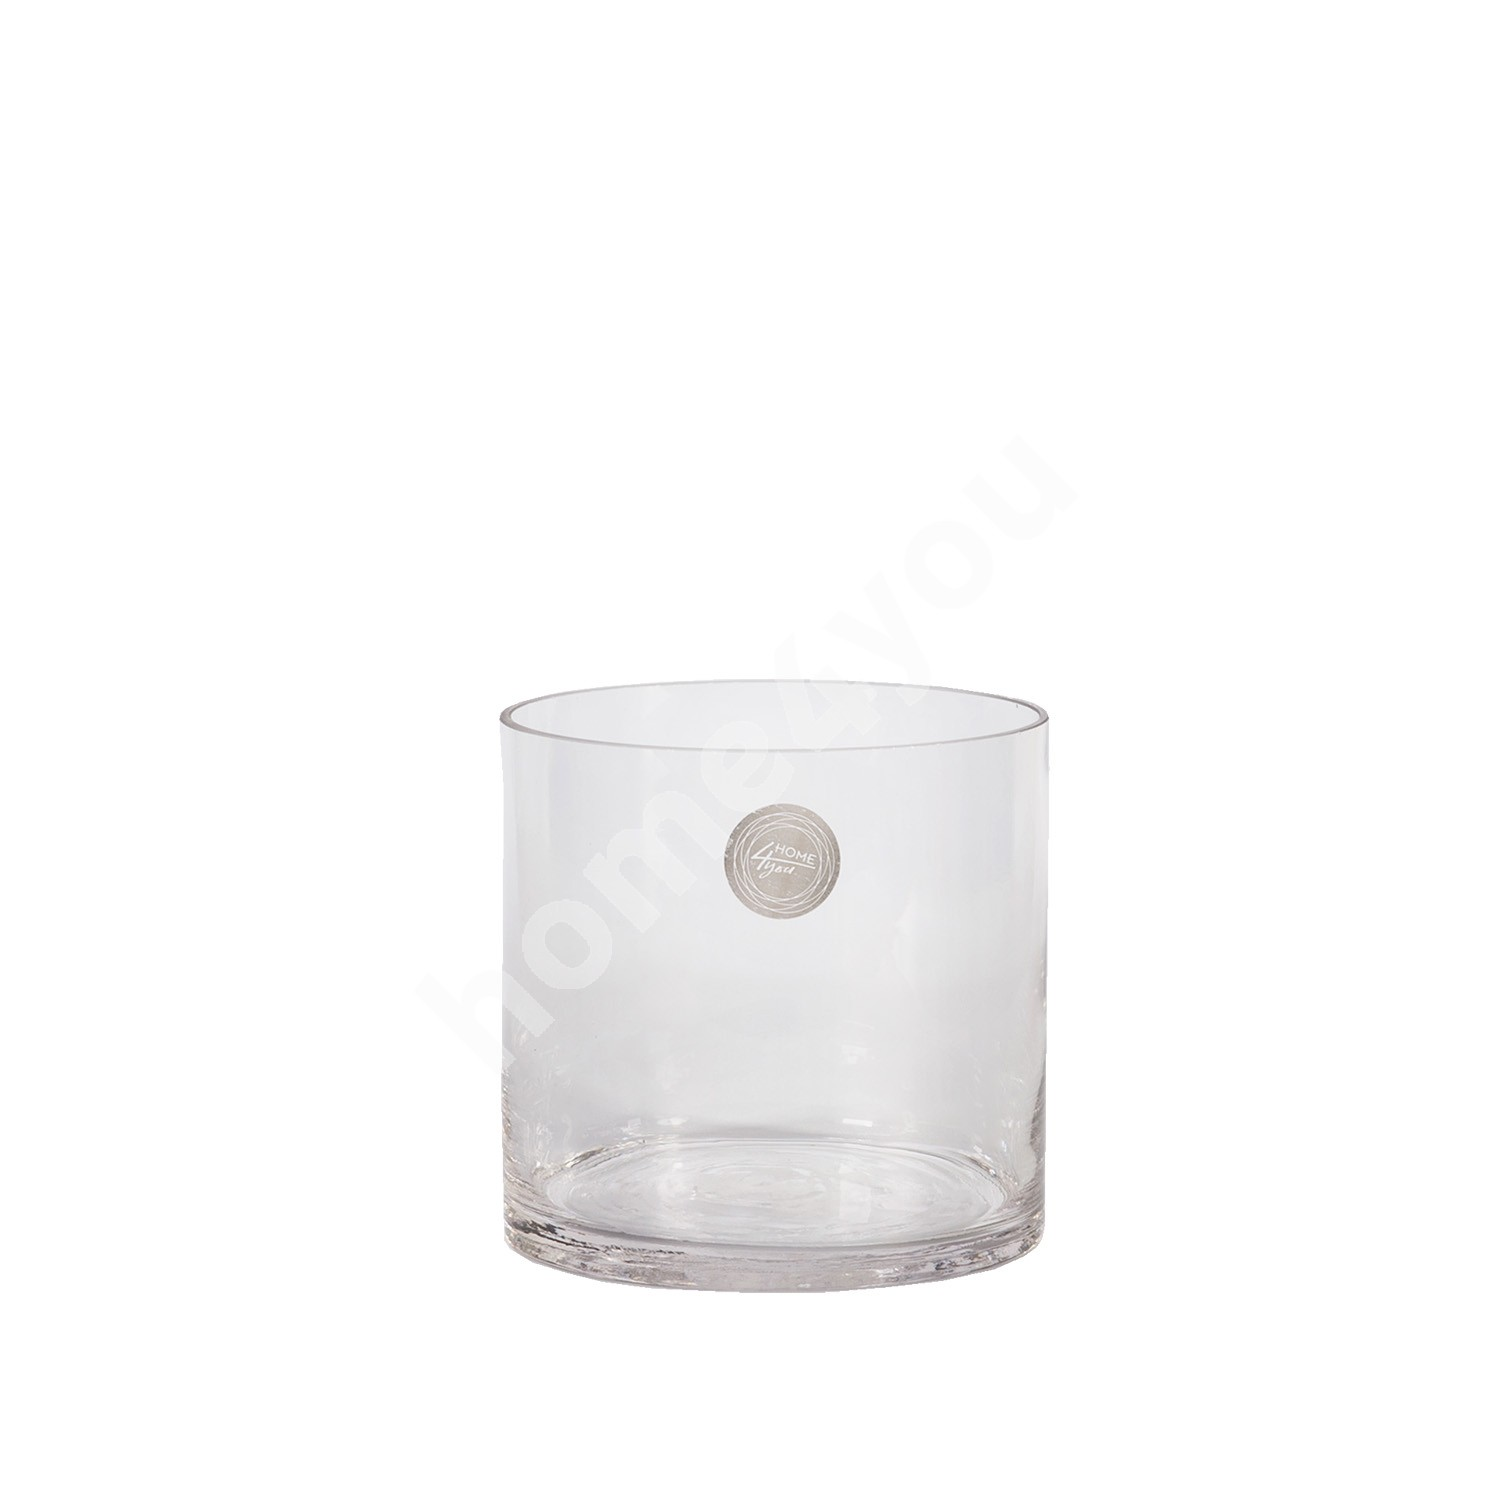 Vase IN HOME D12,5xH12,5cm, clear glass